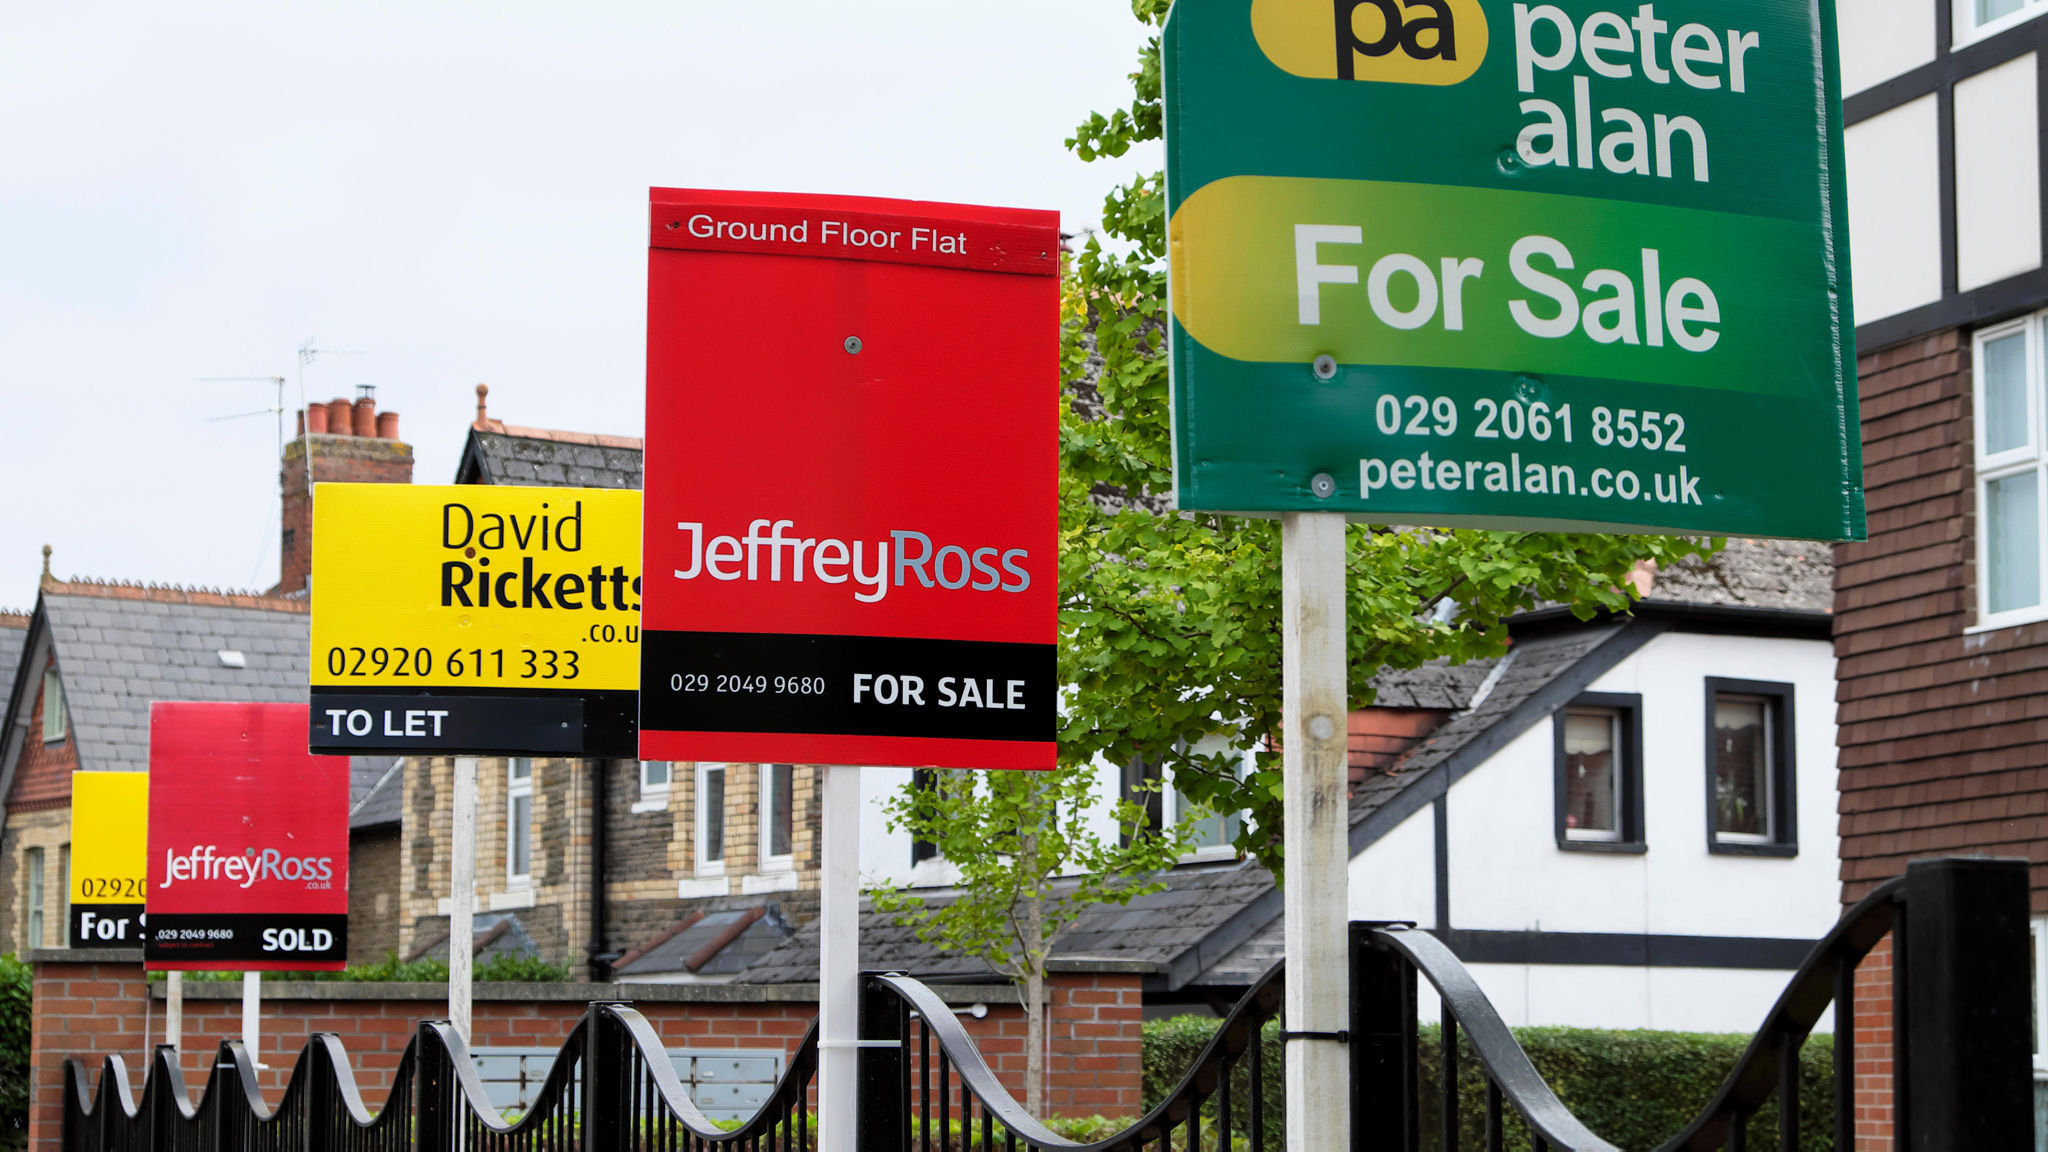 House Prices Forecast To Fall By At Least 5 Under No Deal